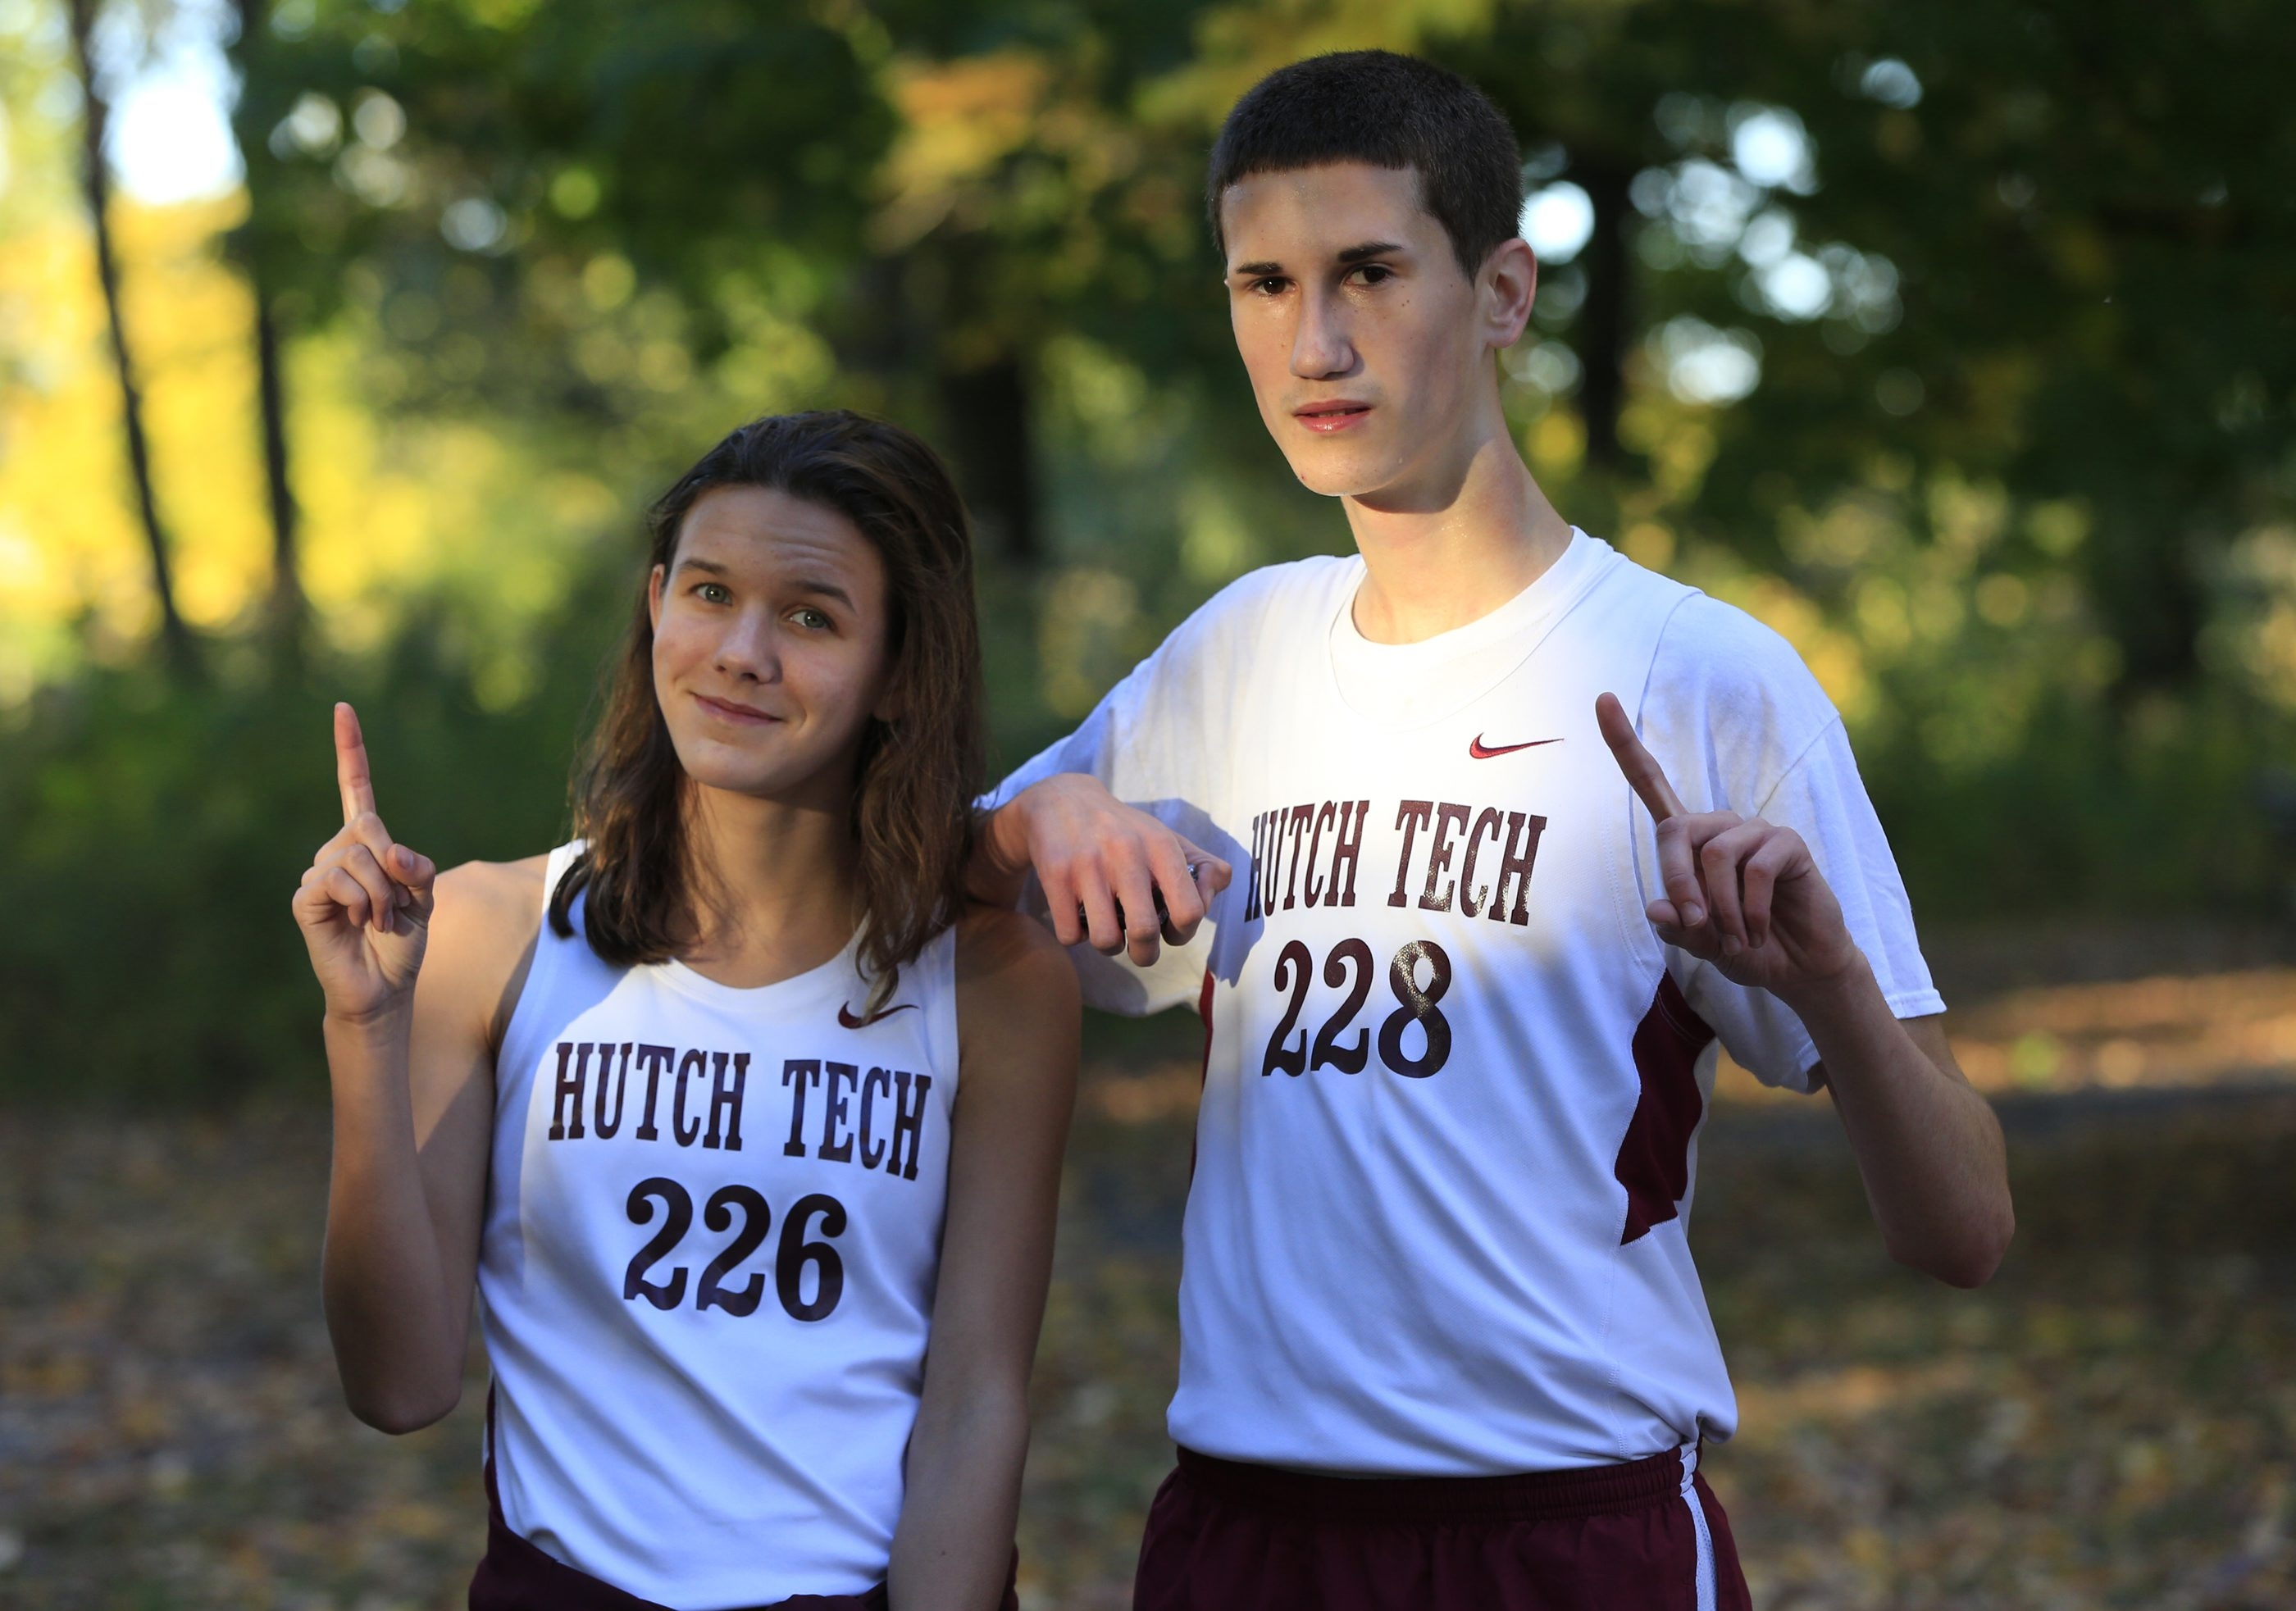 Emily Booth and Njegos Petrovic of Hutch Tech won individual cross country titles.